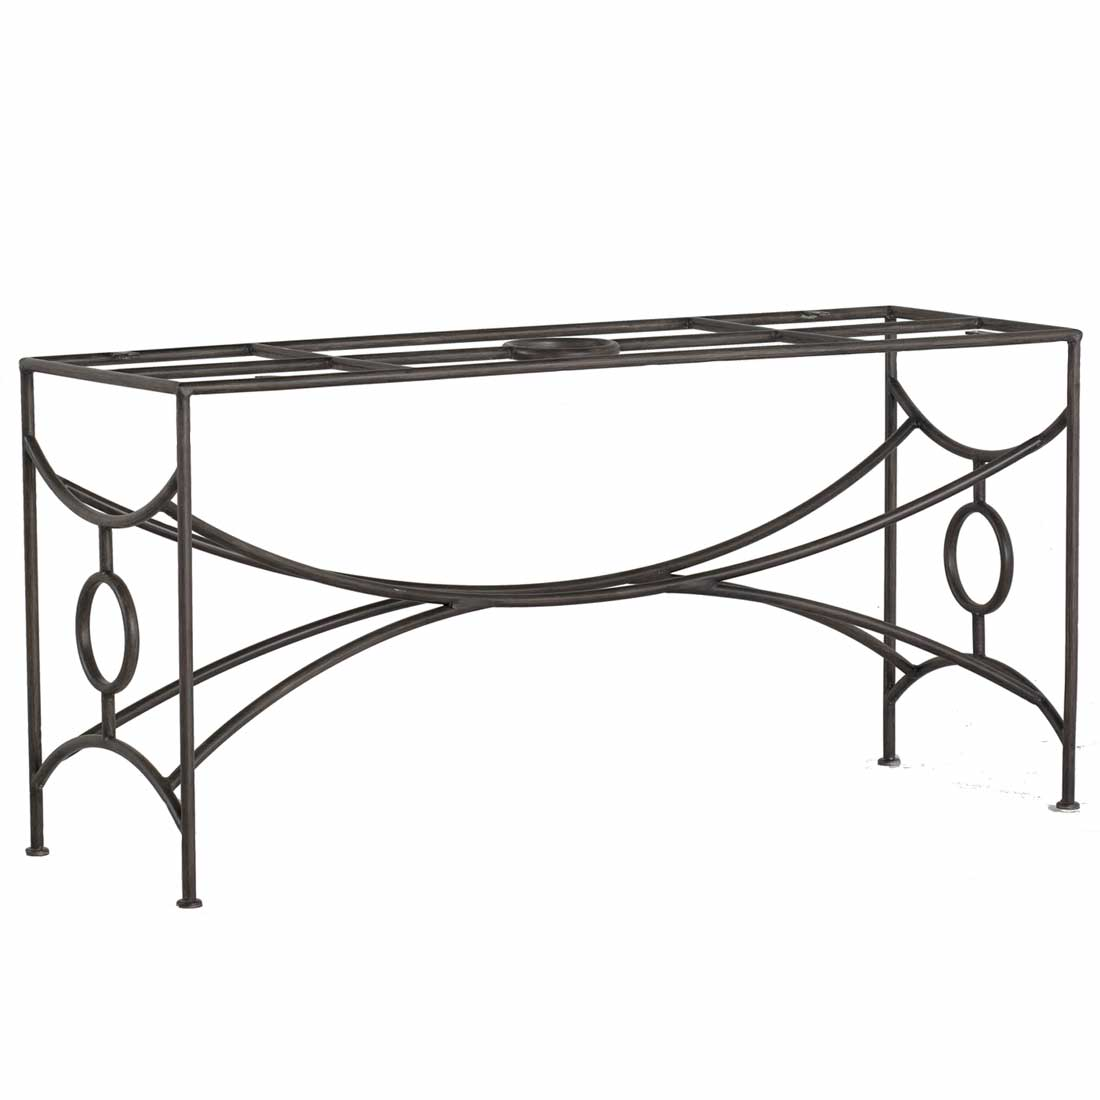 Trestle Iron Dining Table Base Summer Classics - Black metal dining table base